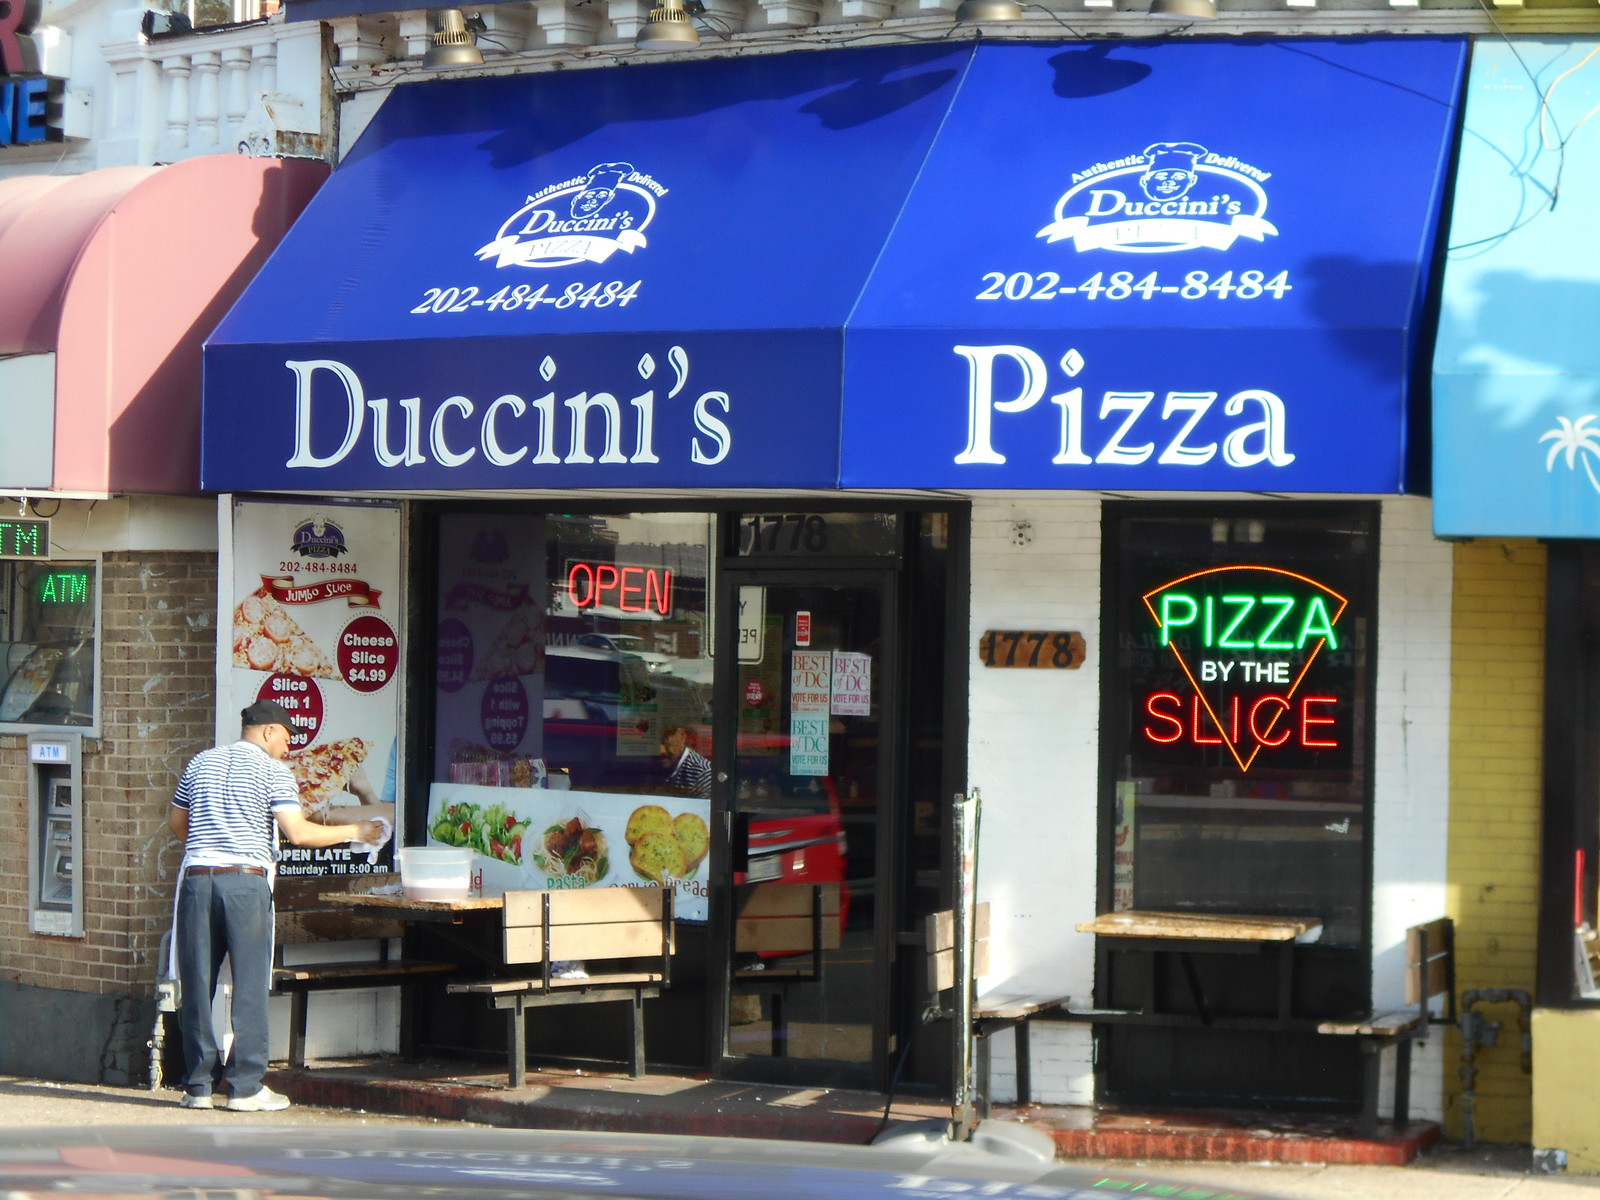 Commercial Restaurant Pizza Awning